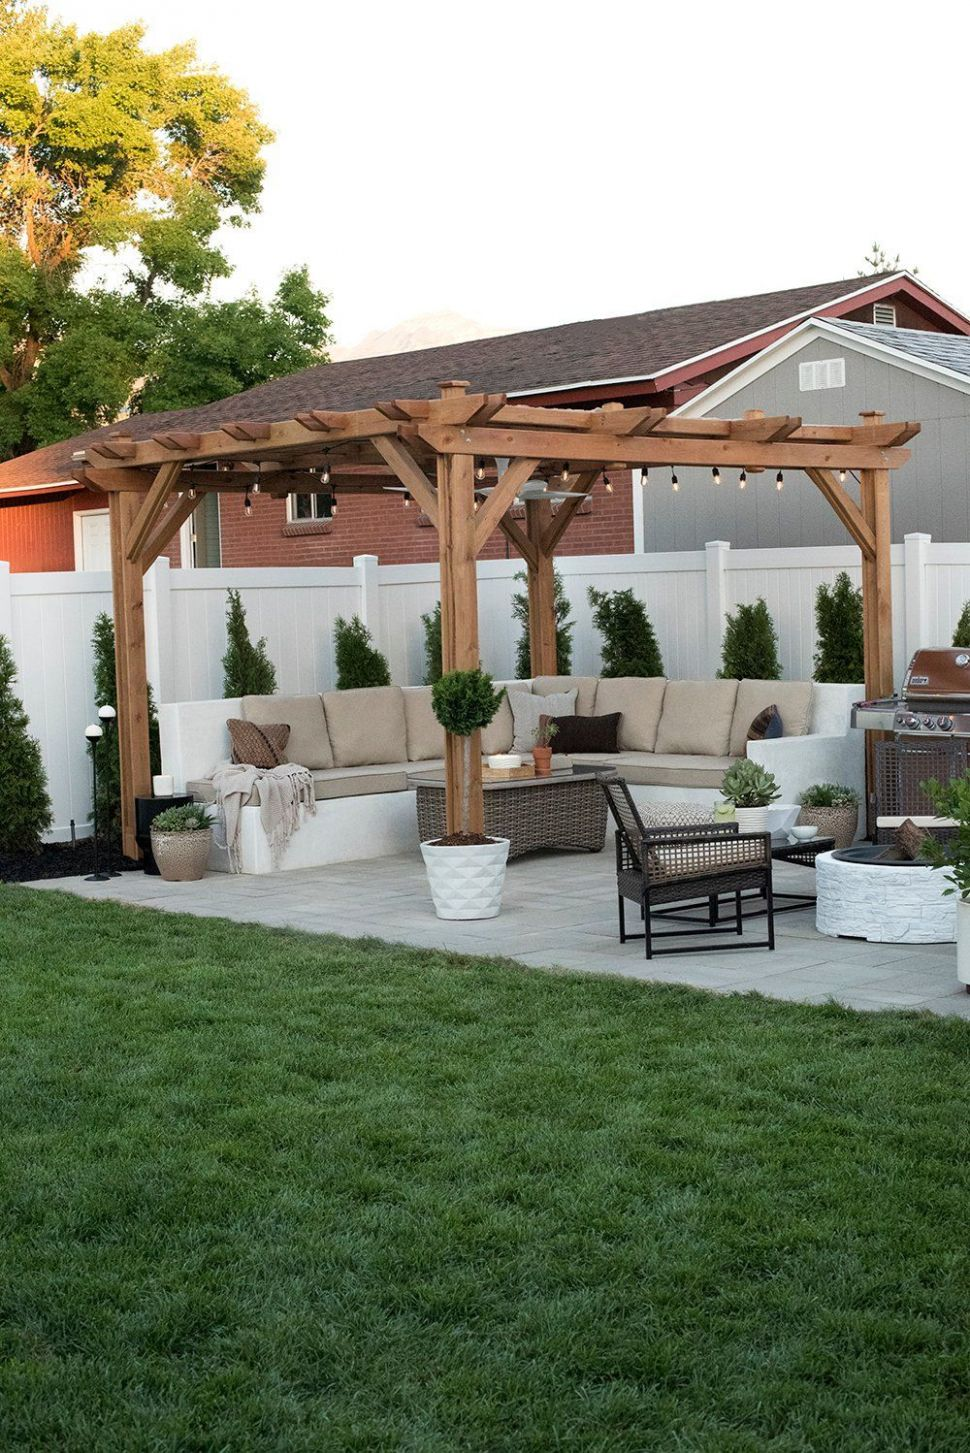 Our Backyard Reveal & Get the Look | Small backyard patio ...